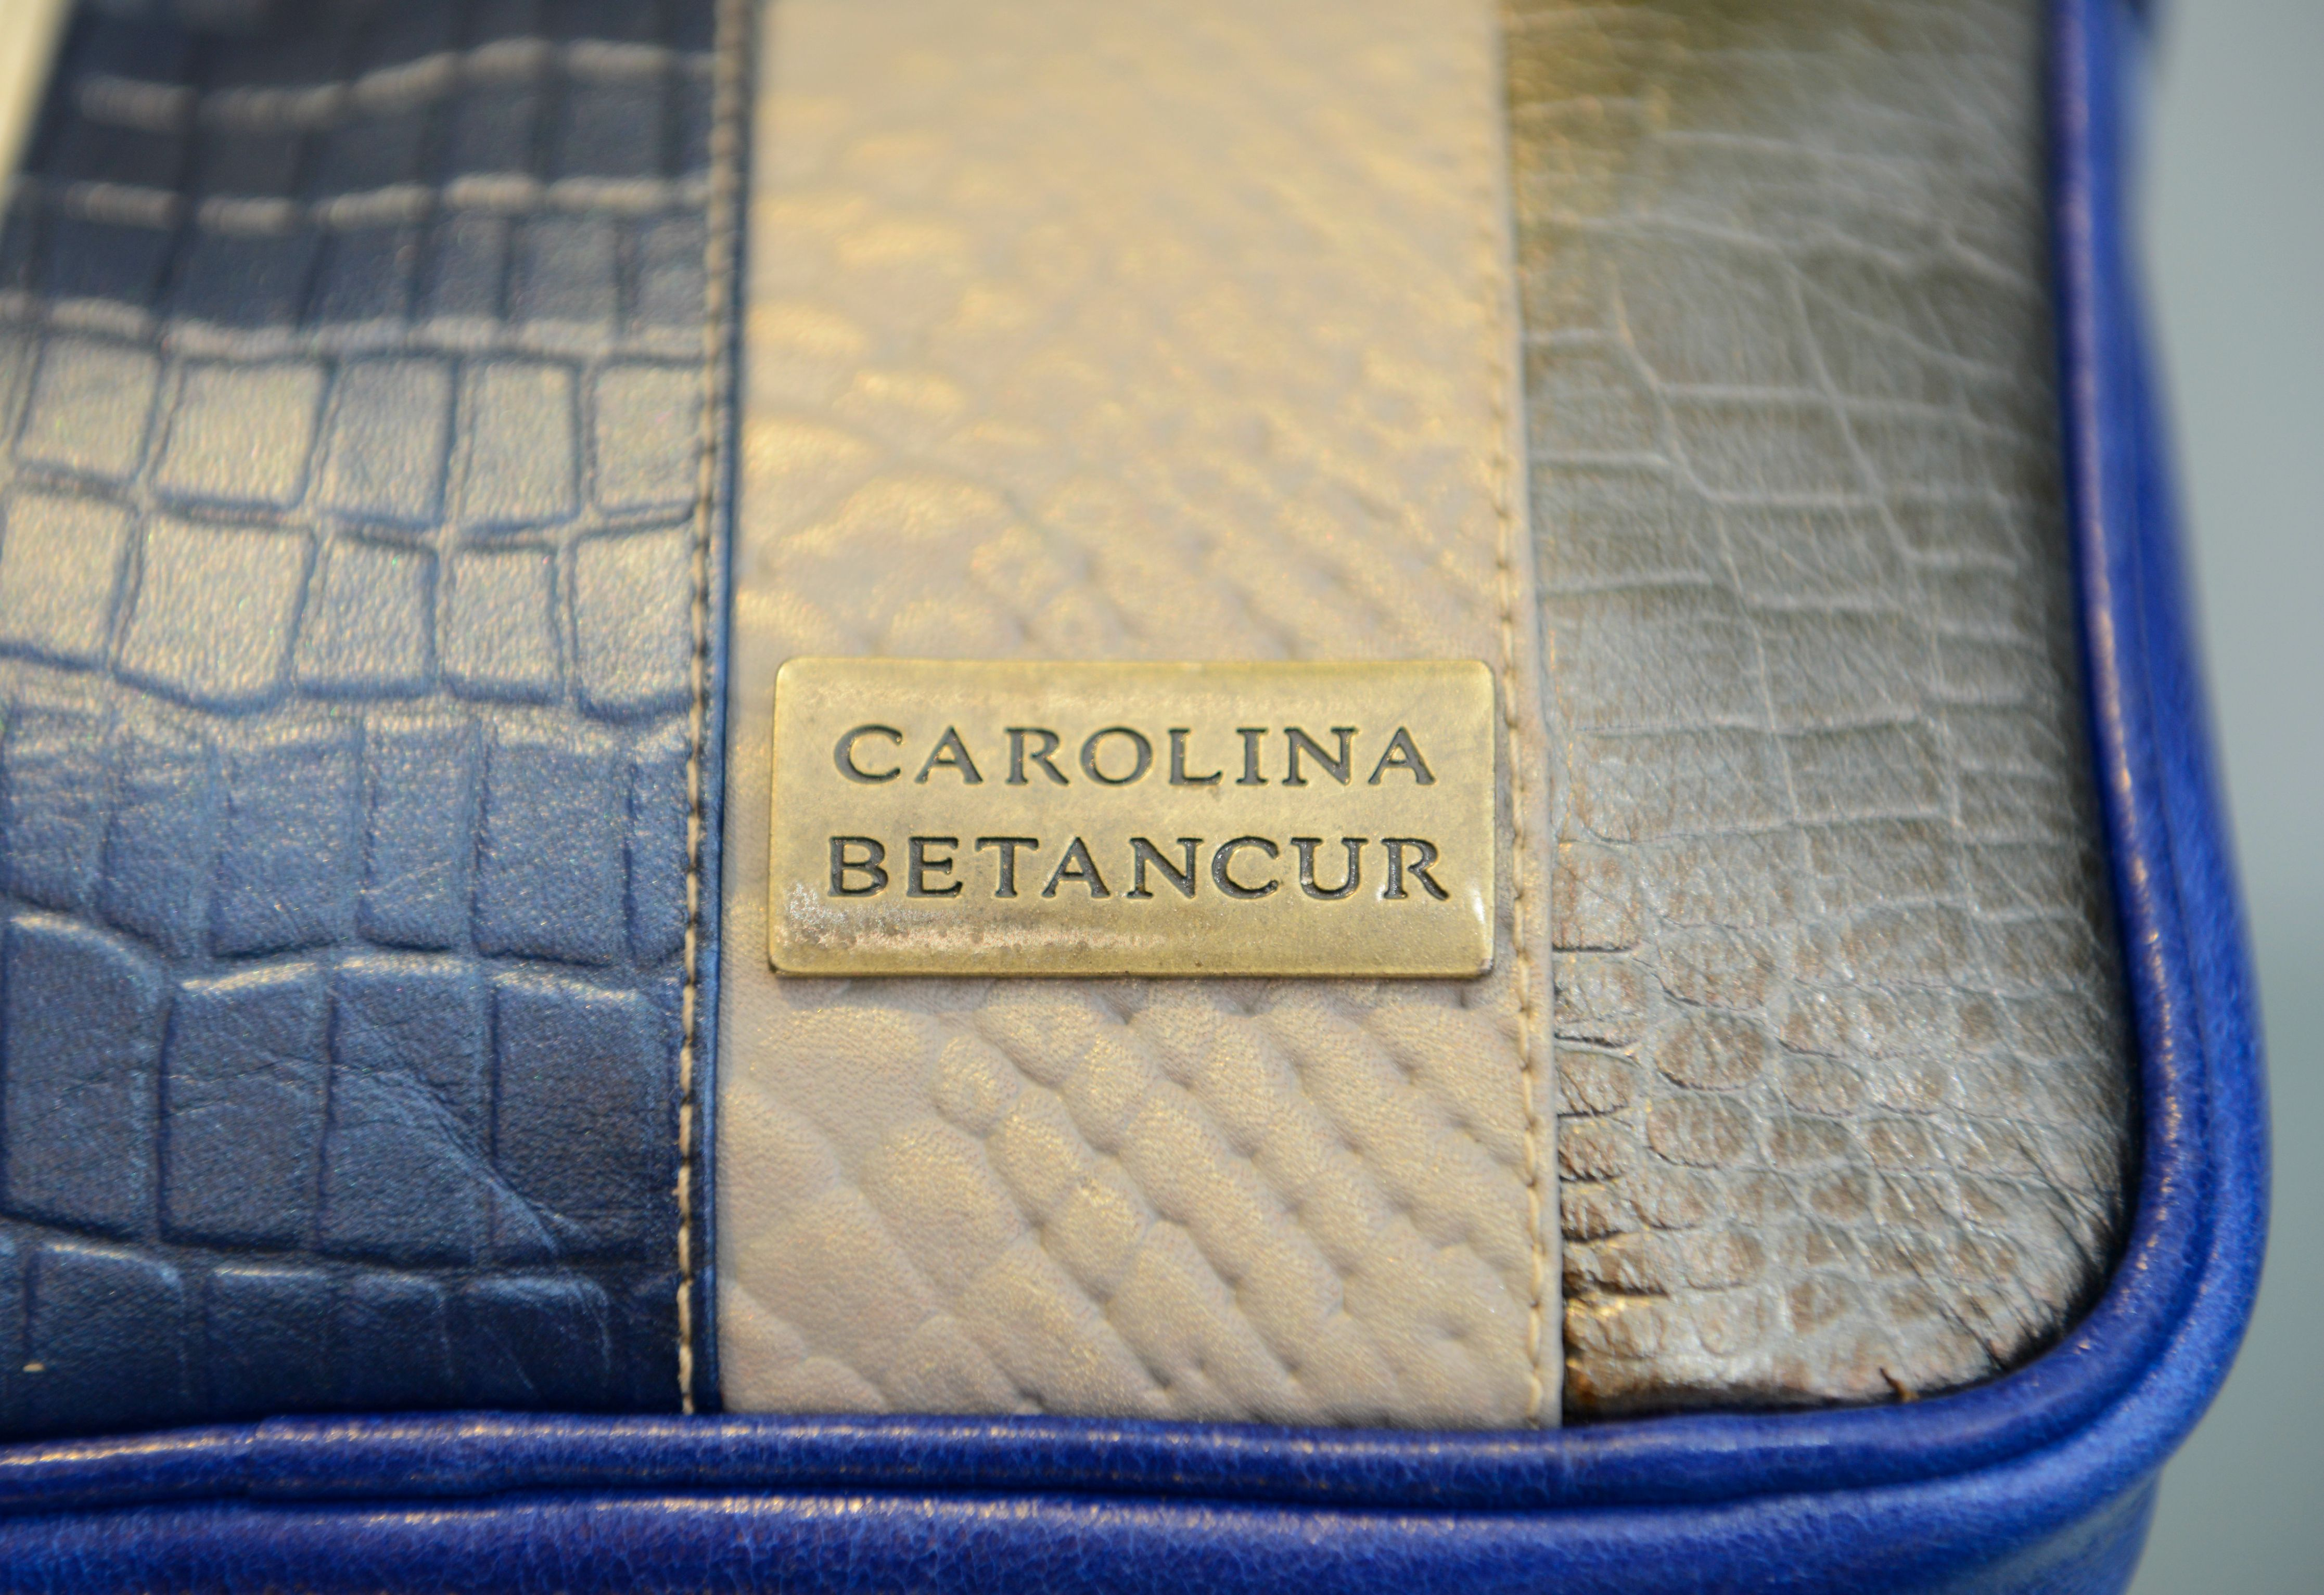 Carolina Betancur. Sache Boutiques in Chadds Ford, PA.